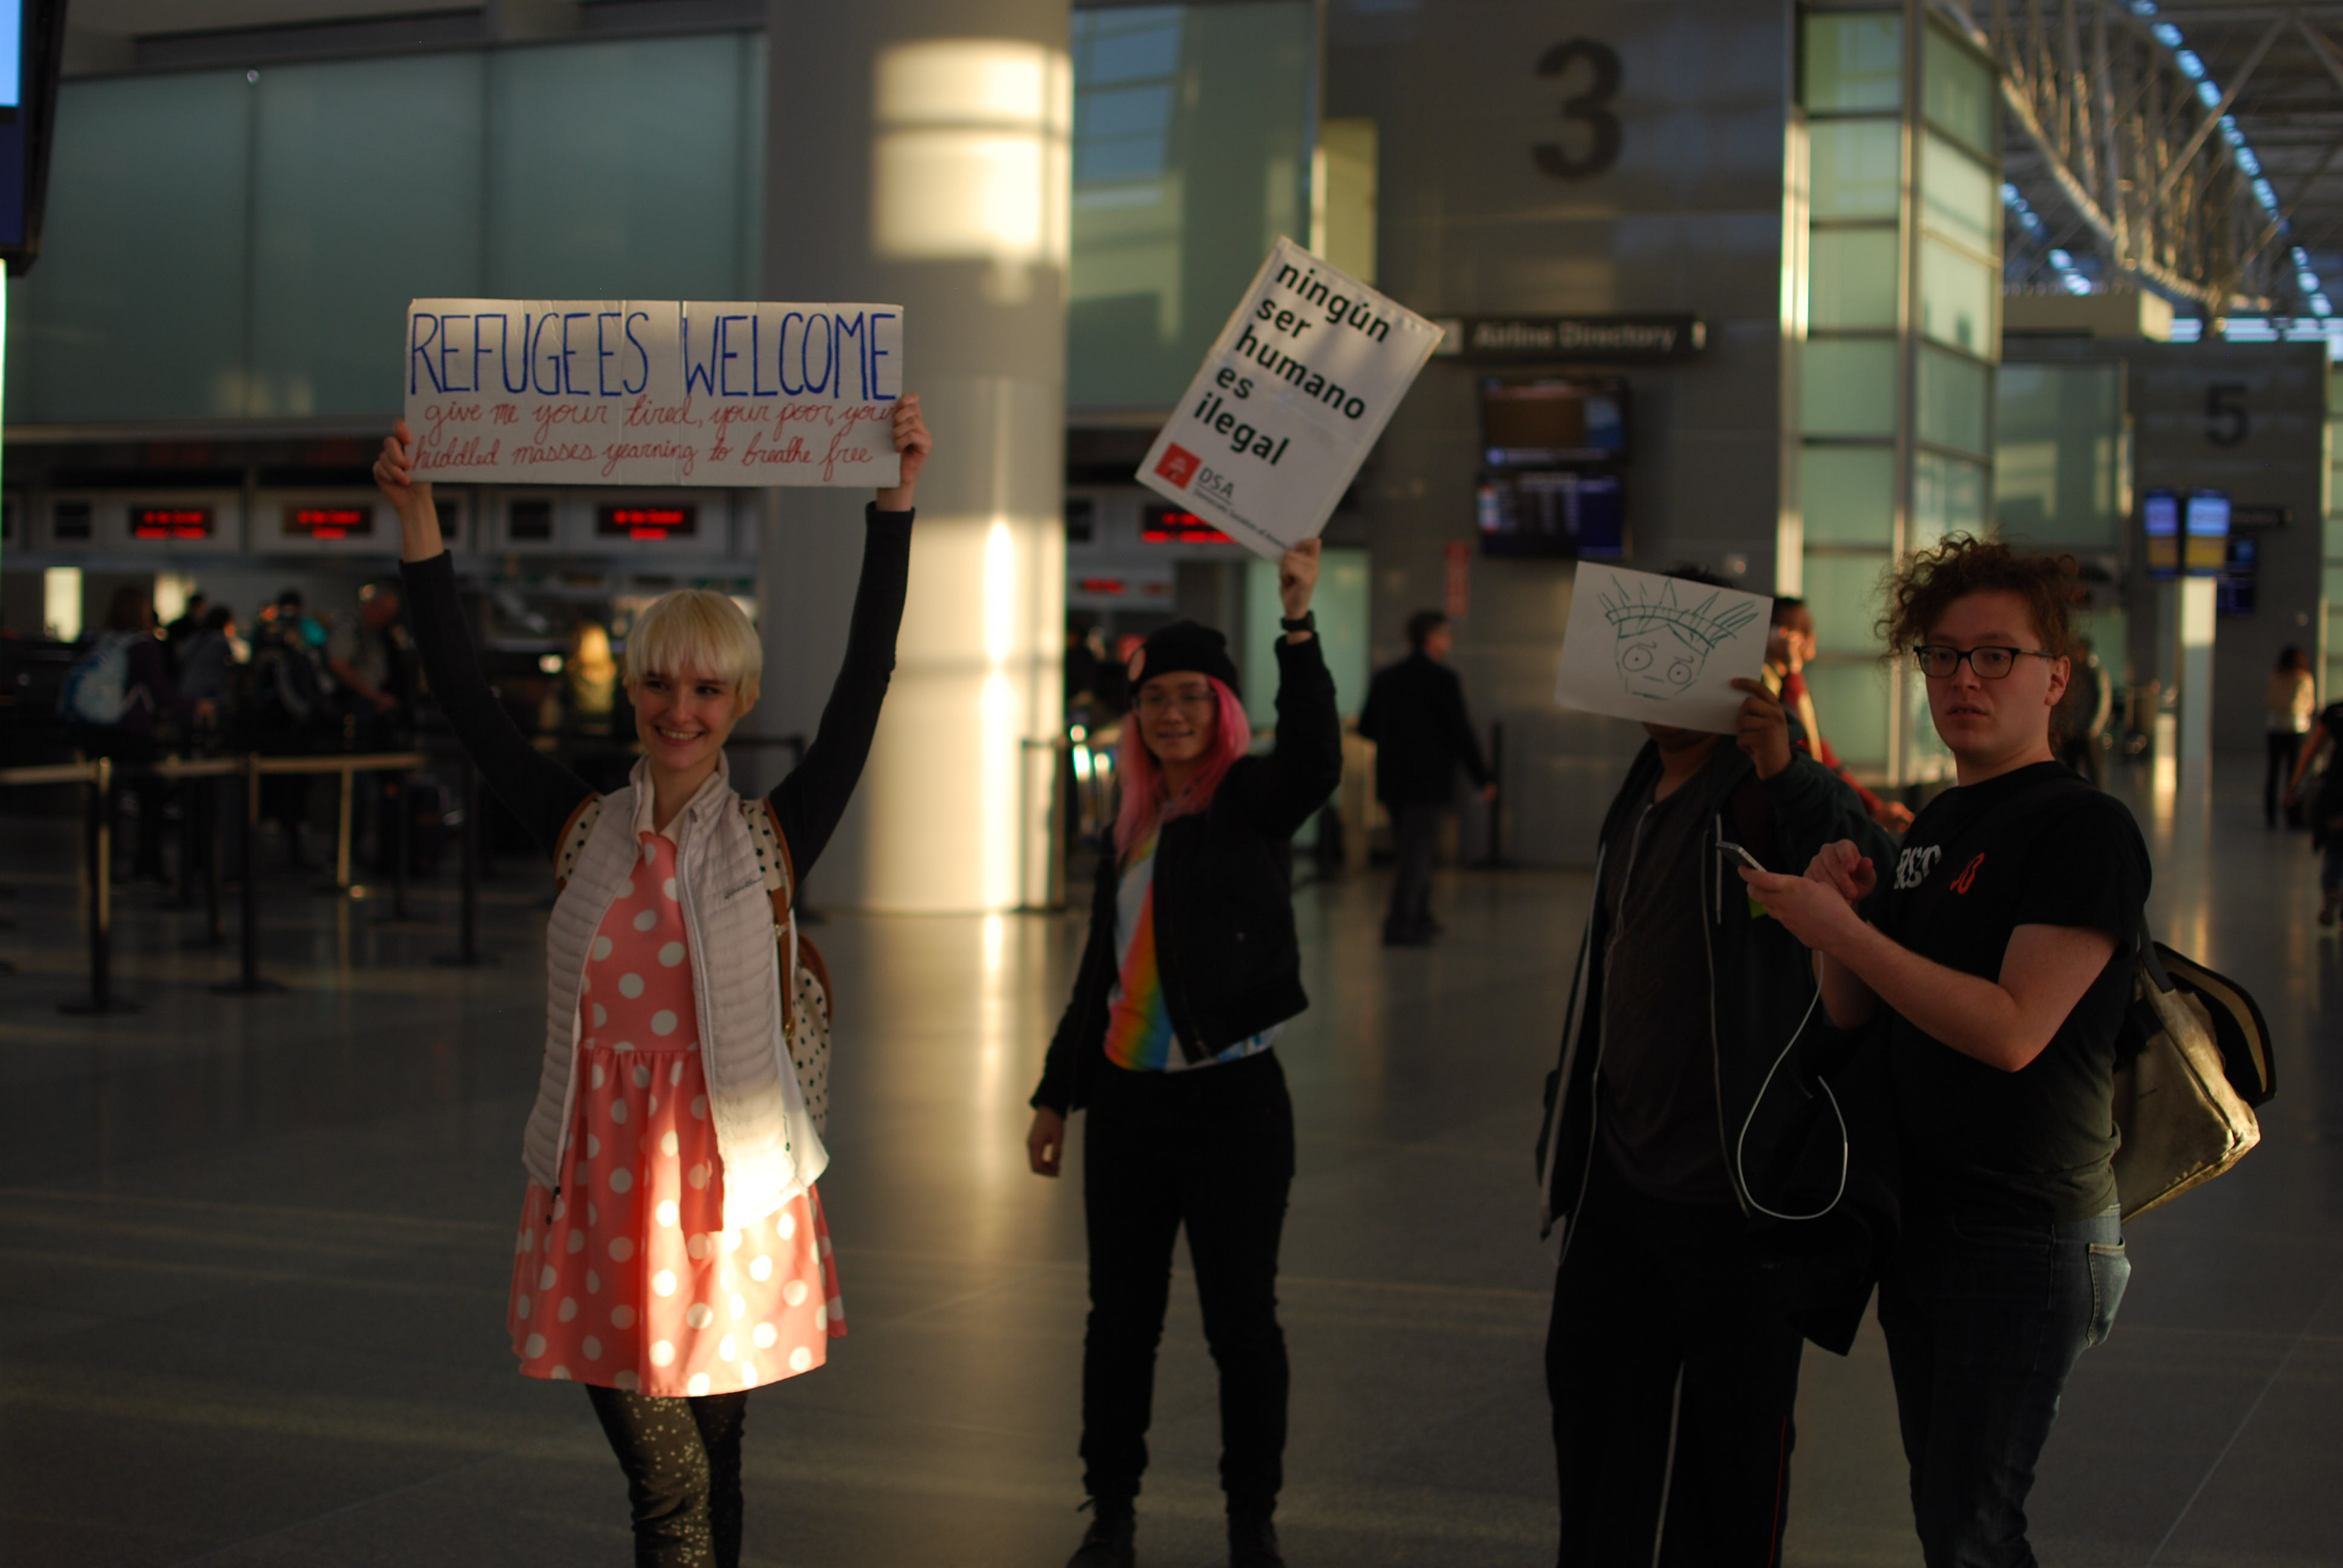 SFO-travel-ban-protest-refugees-welcome